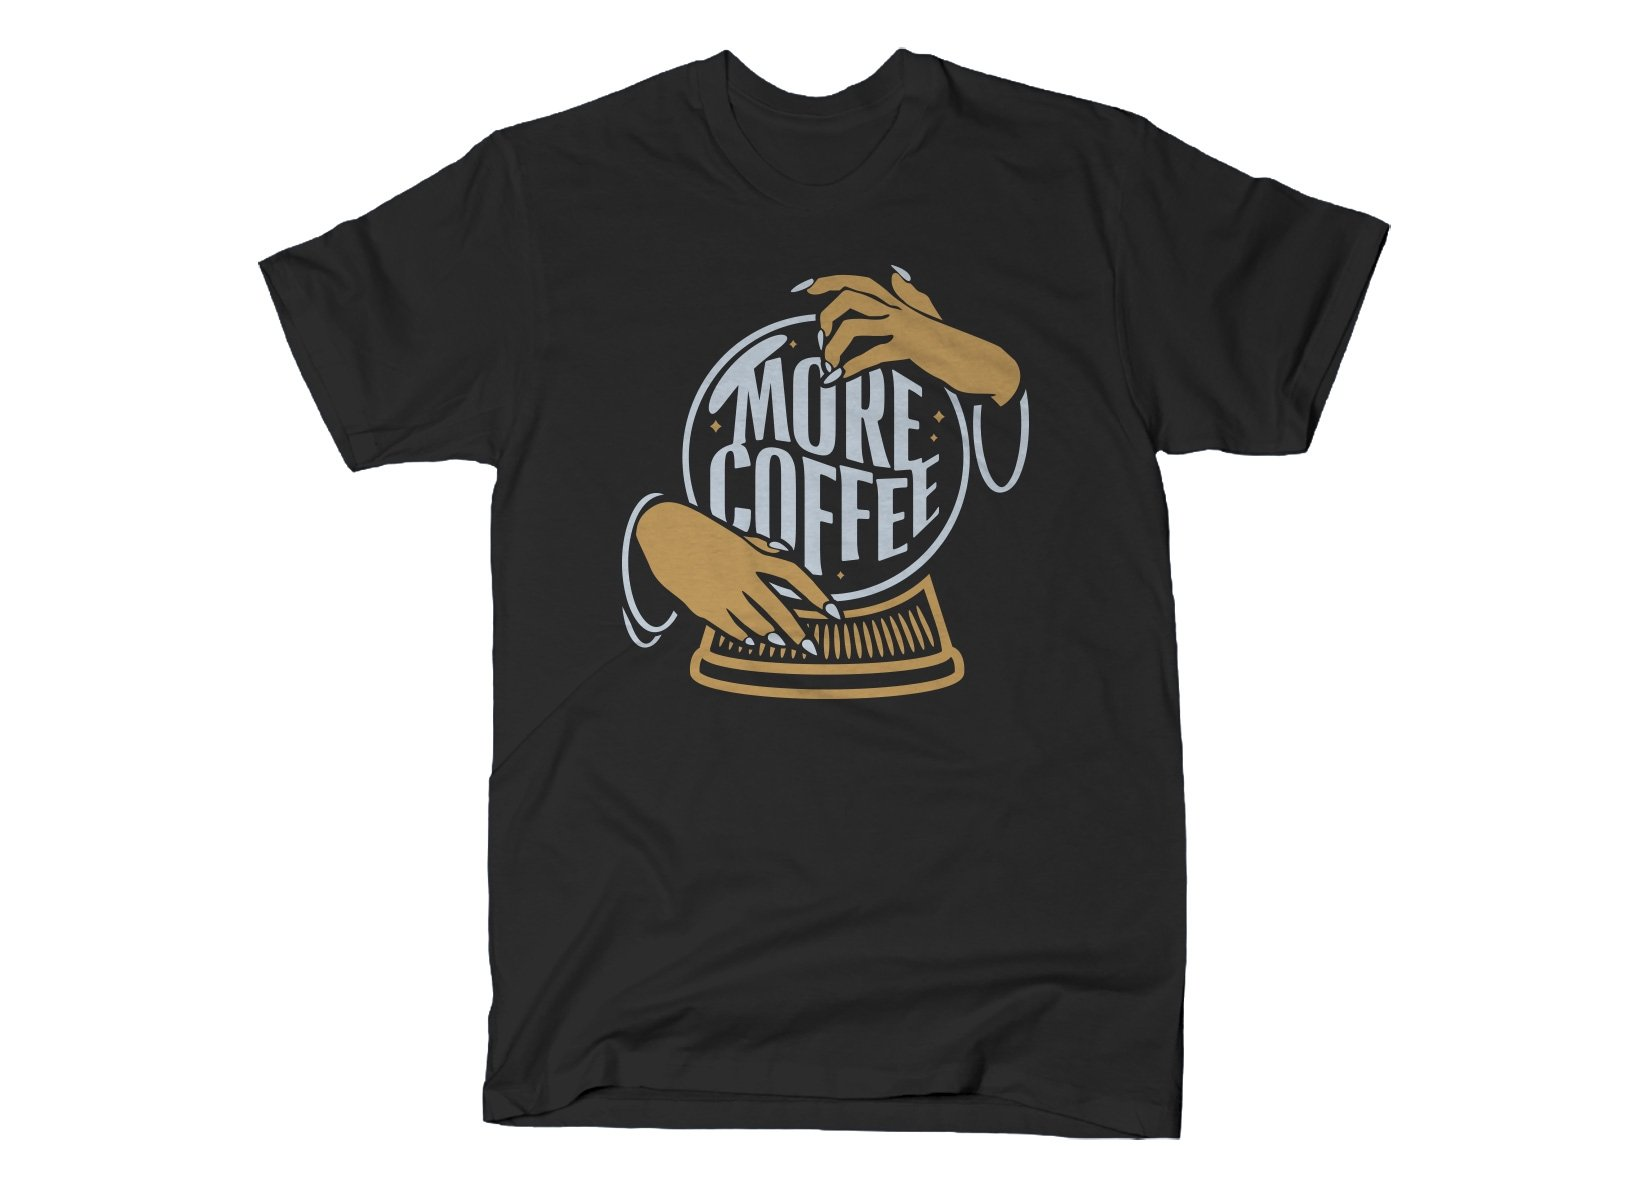 More Coffee on Mens T-Shirt